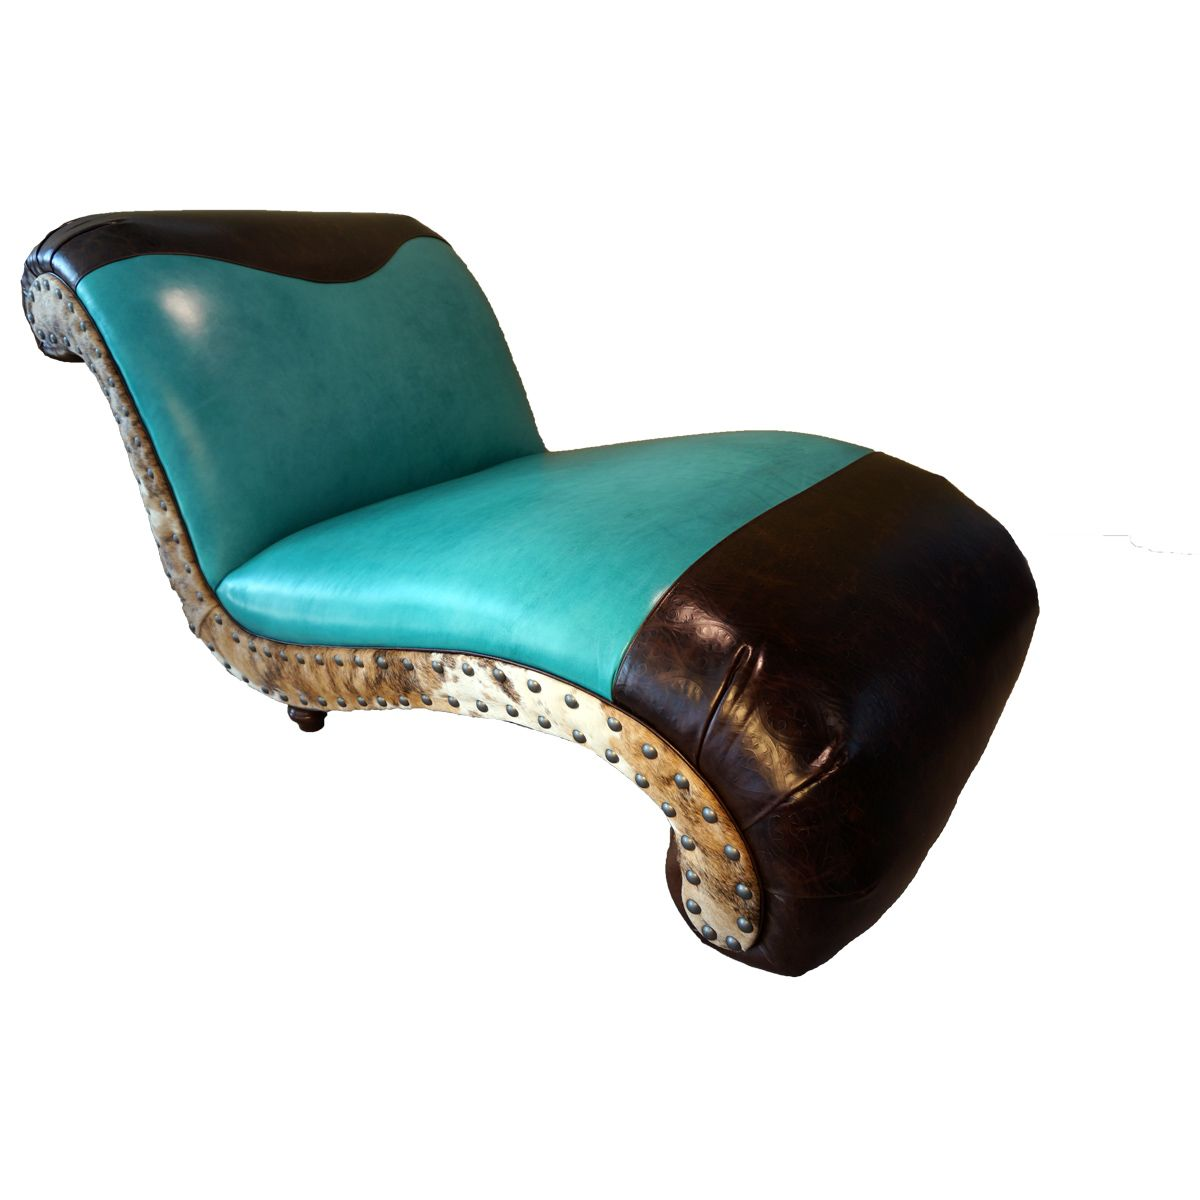 Albuquerque Turquoise Chaise Lounge